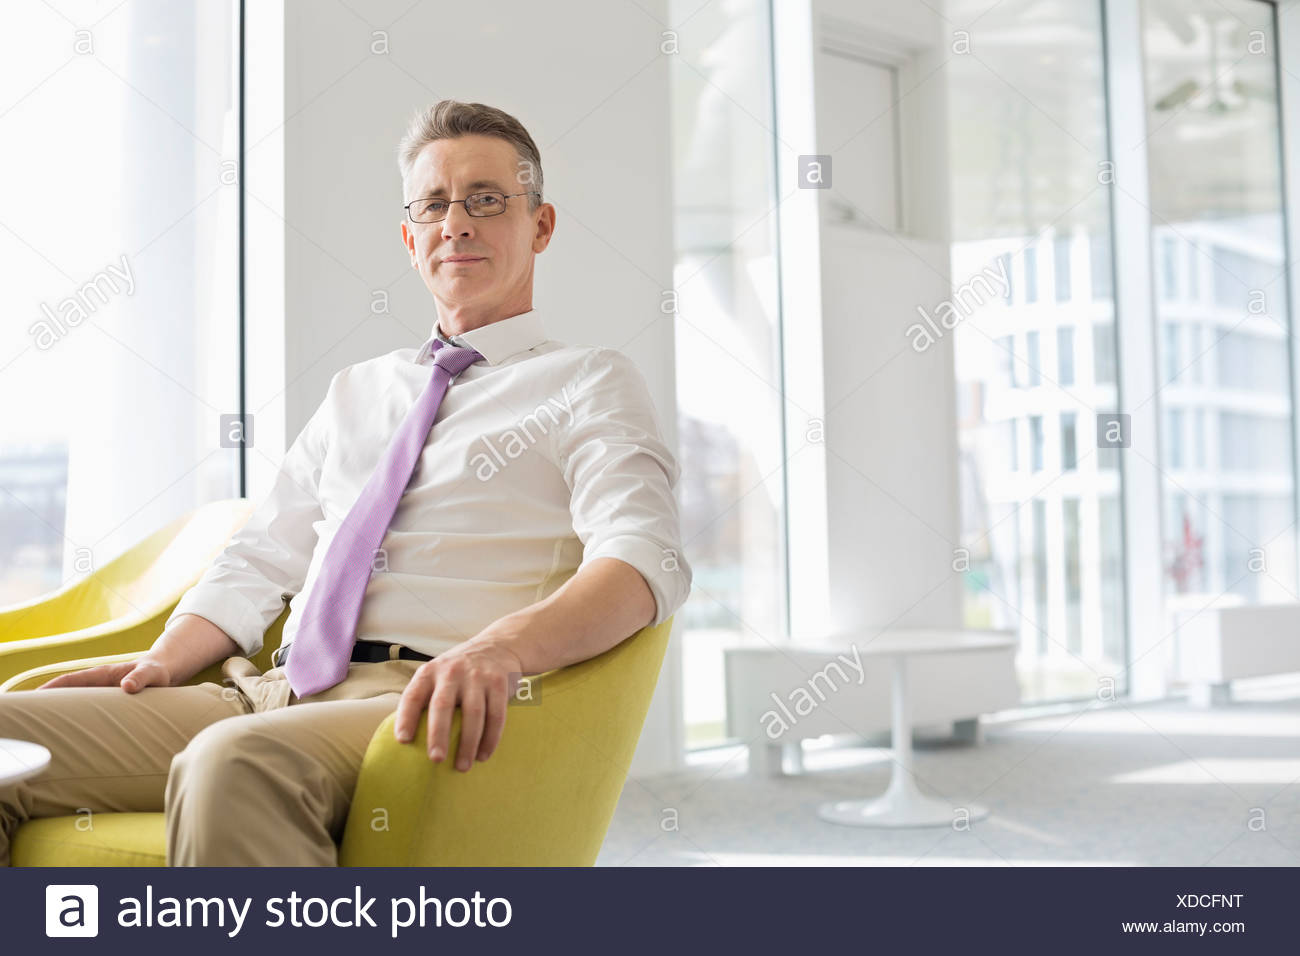 Portrait of businessman sitting at office lobby Photo Stock